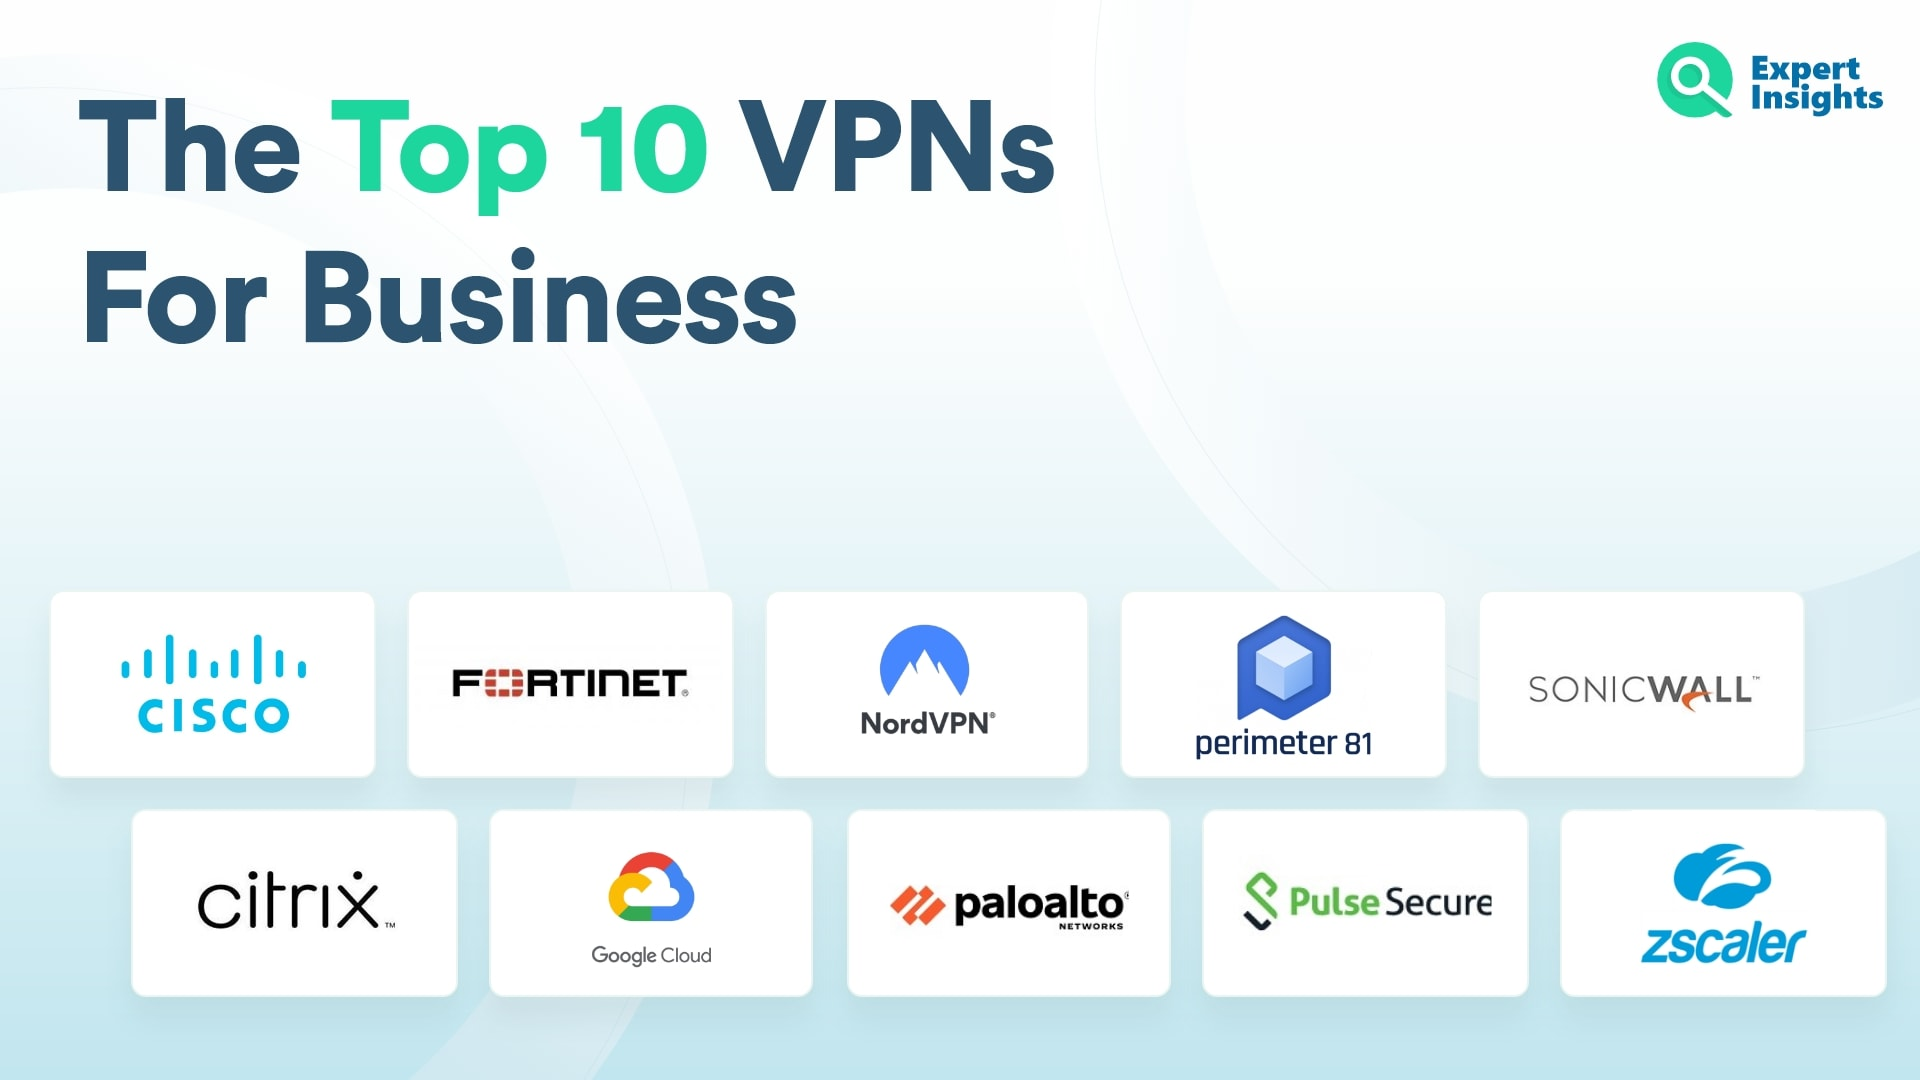 The Top 10 VPNs For Business - Expert Insights